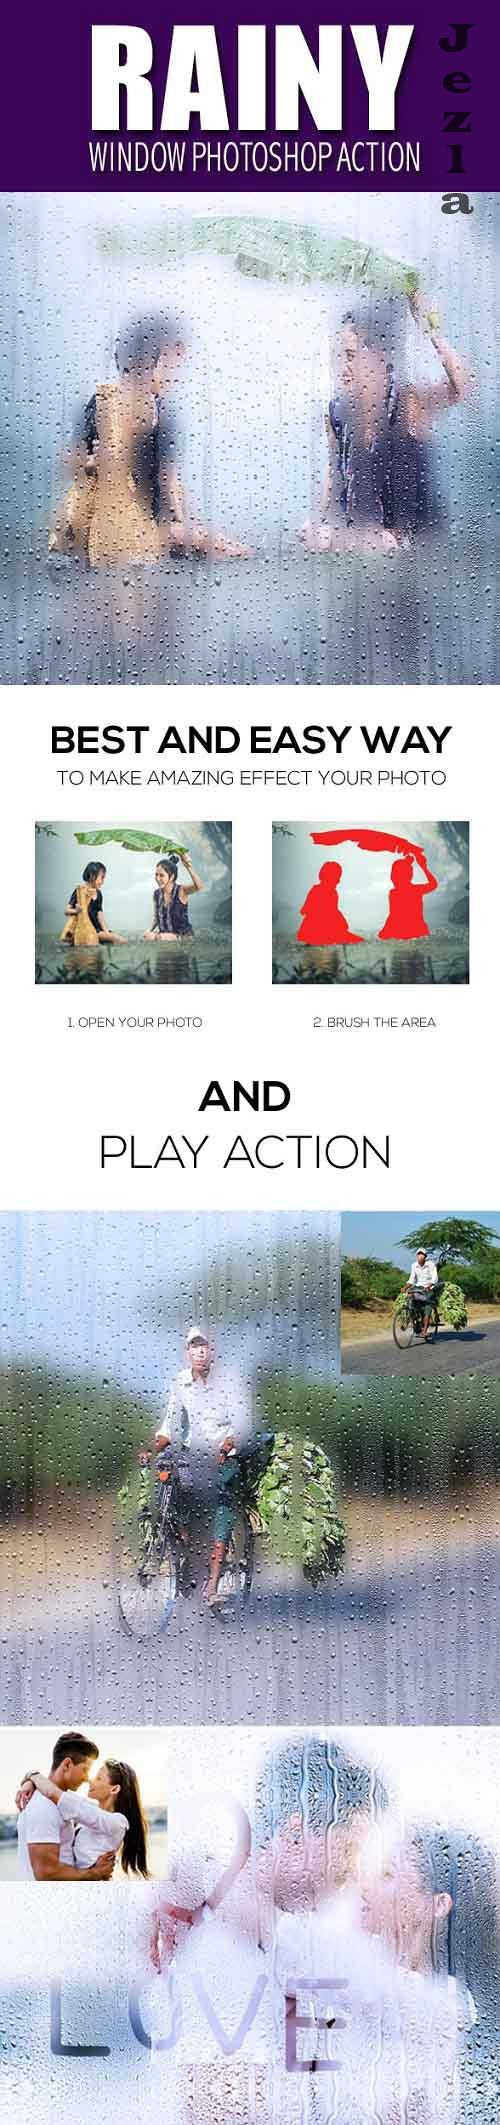 GraphicRiver - Rainy Window Photoshop Action 20178712